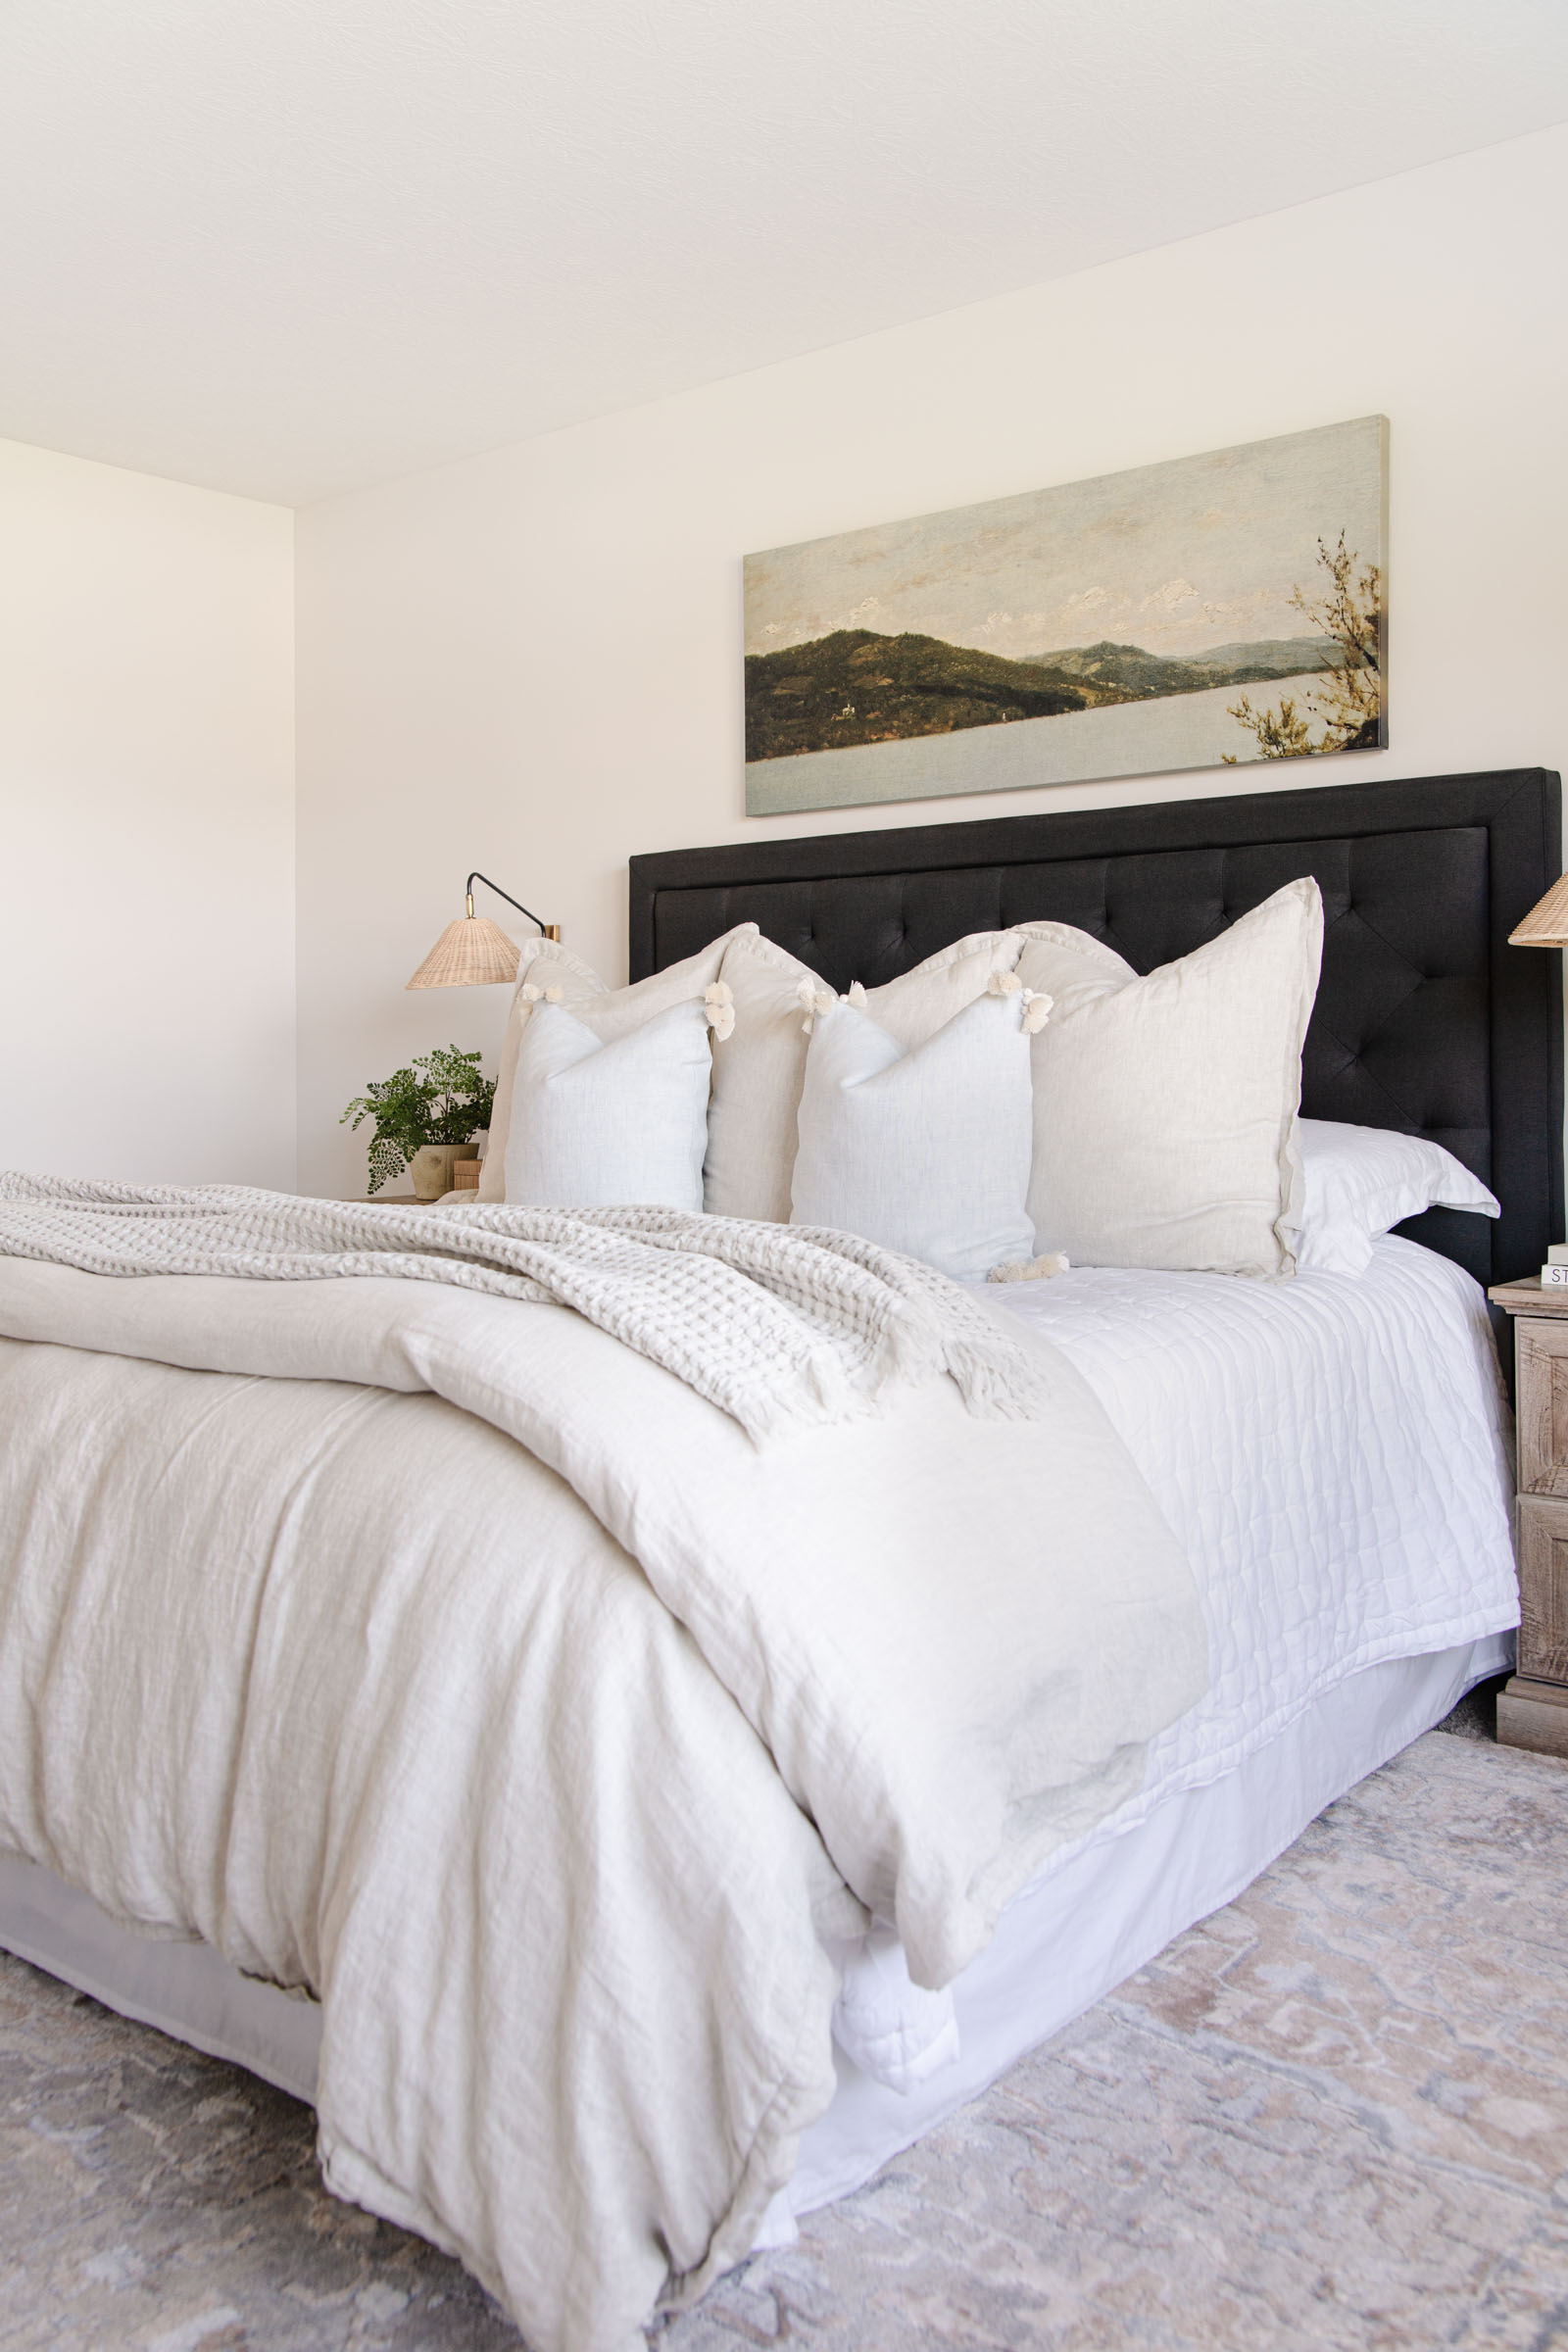 Creating a Bedroom Retreat with Serena and Lily | Sutter linen quilt, Cavallo linen duvet cover, Cayucos pillow cover, neutral bedroom styling